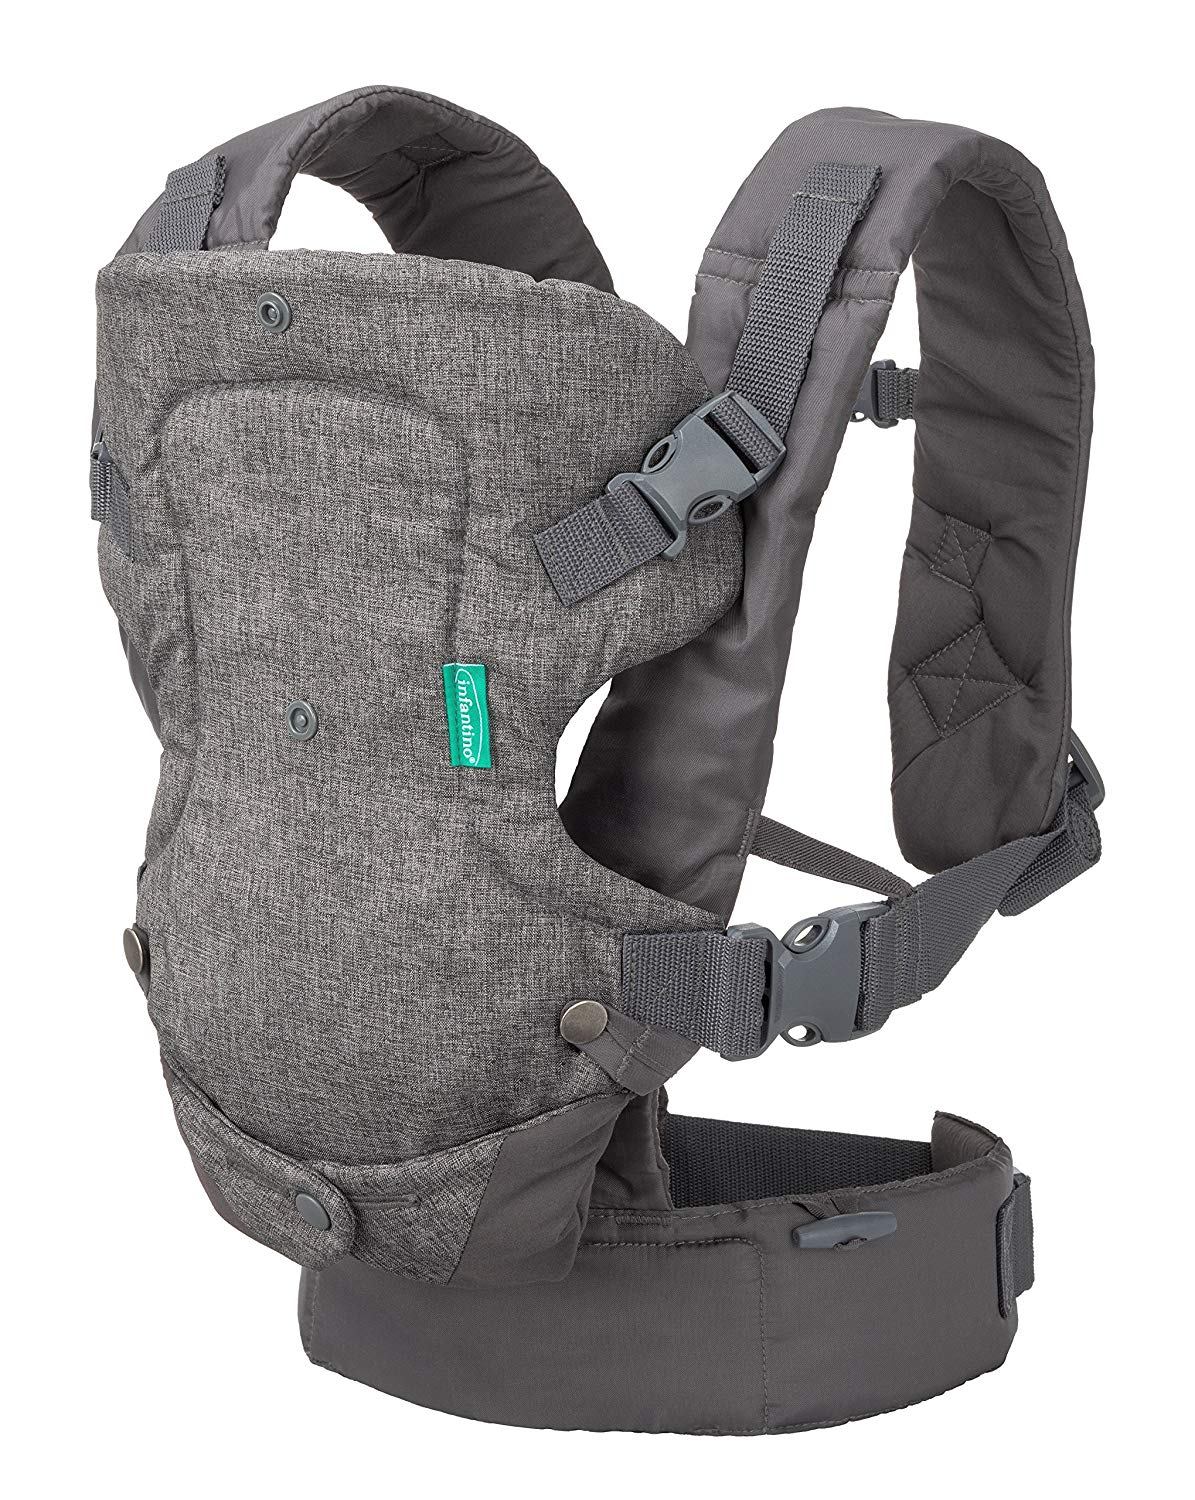 The Ergonomic Baby Carrier